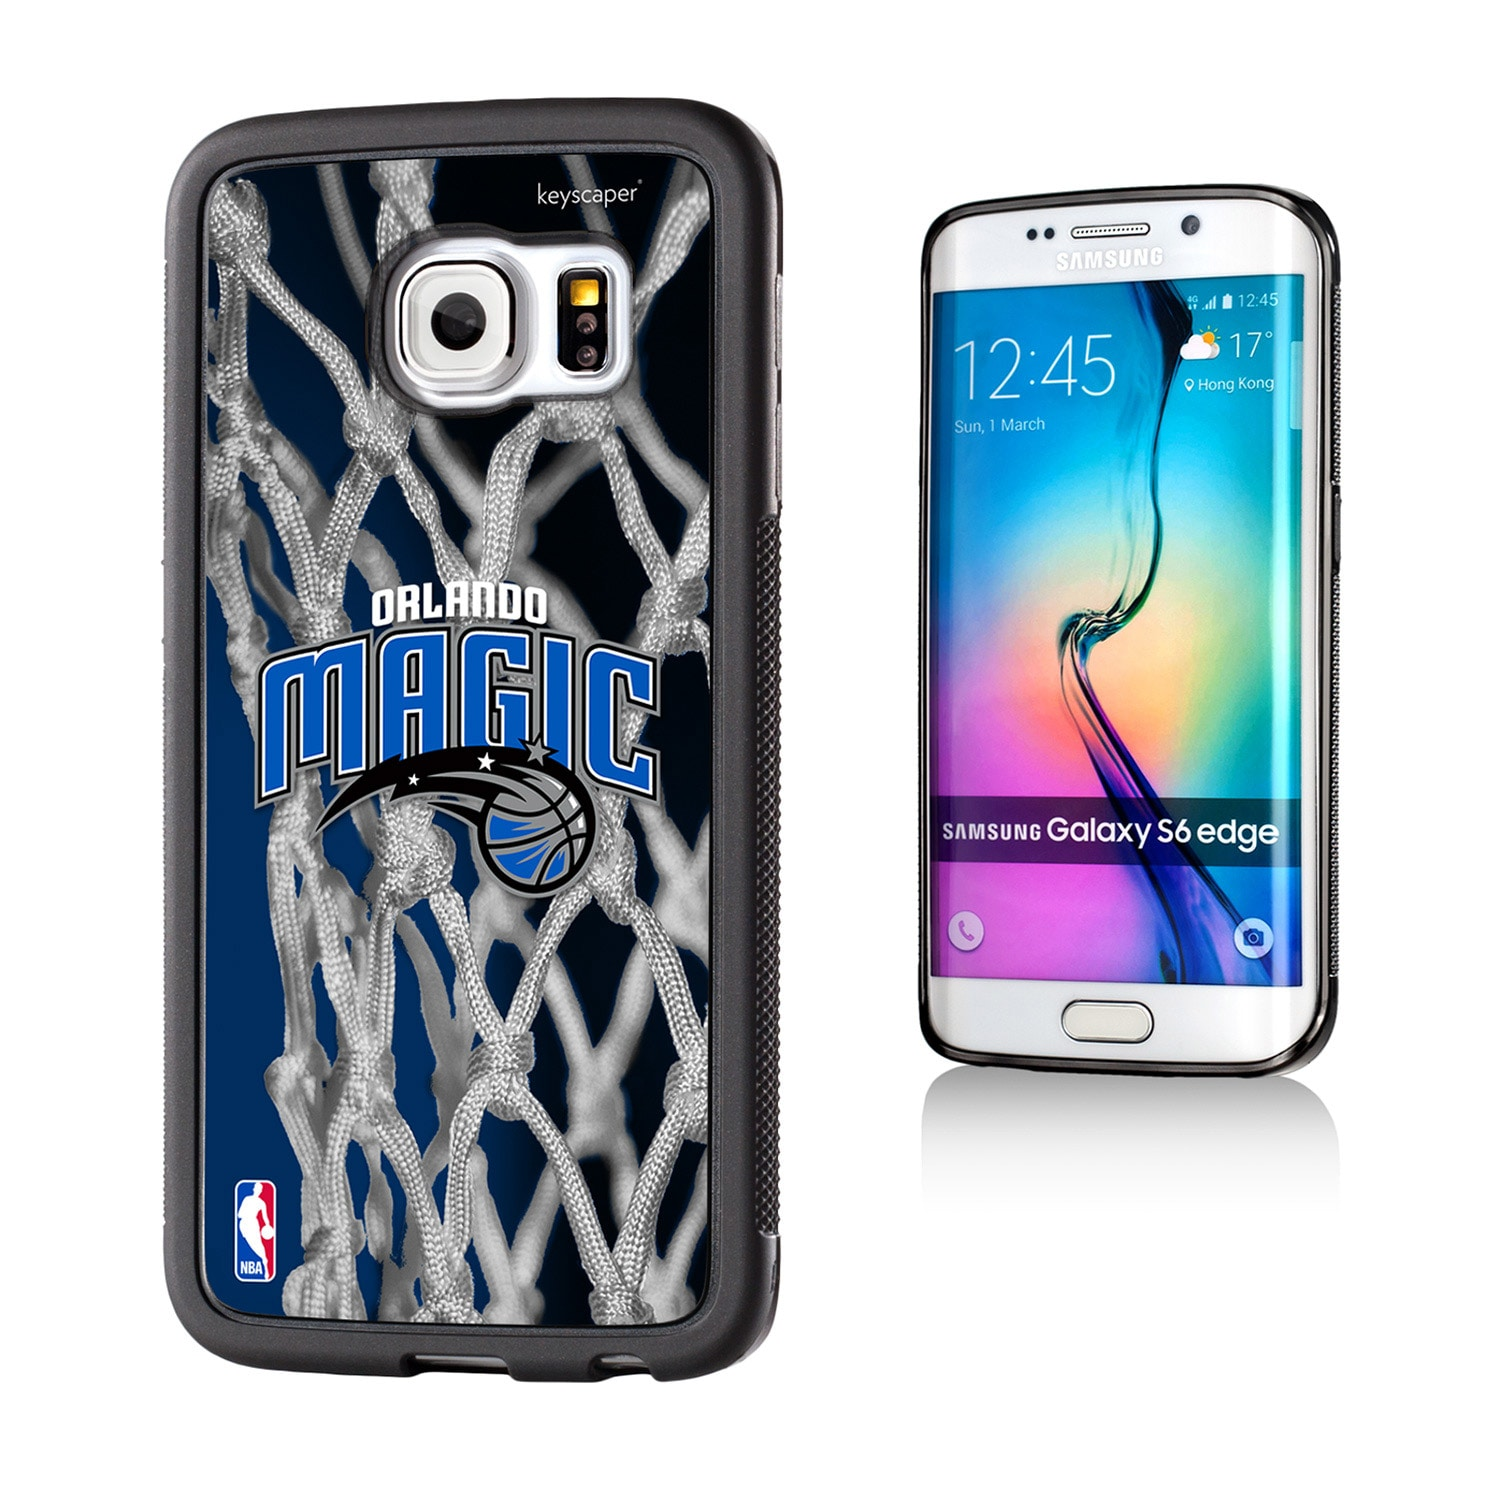 Orlando Magic Net 2 Galaxy S6 Edge Bumper Case